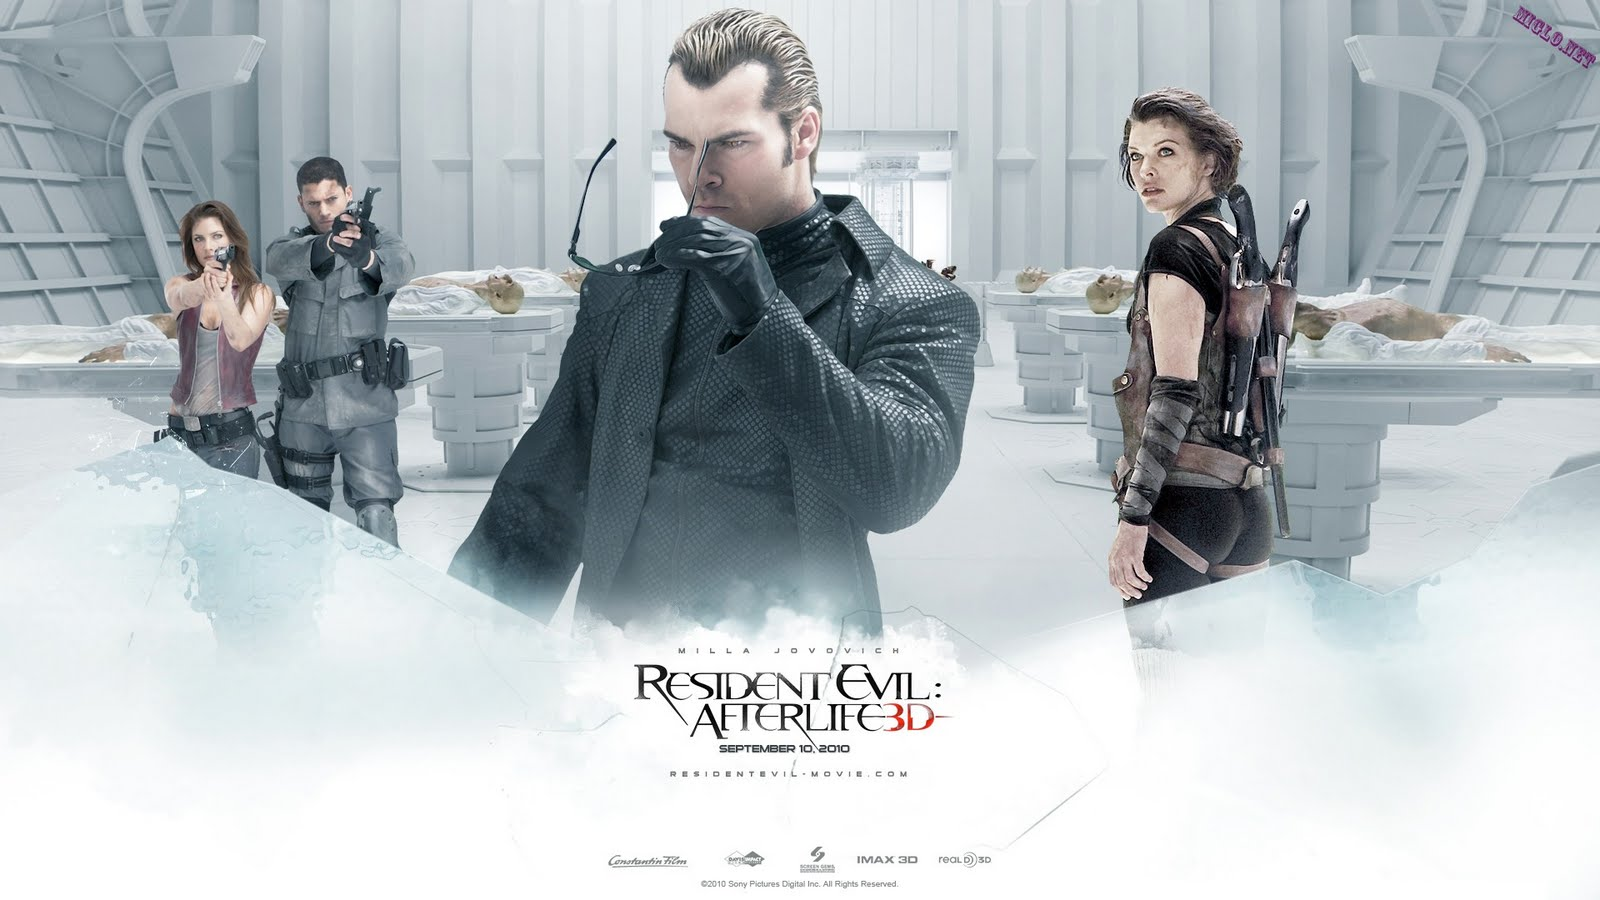 Télécharger Shawn Roberts dans Residen Evil Afterlife Wallpaper stock